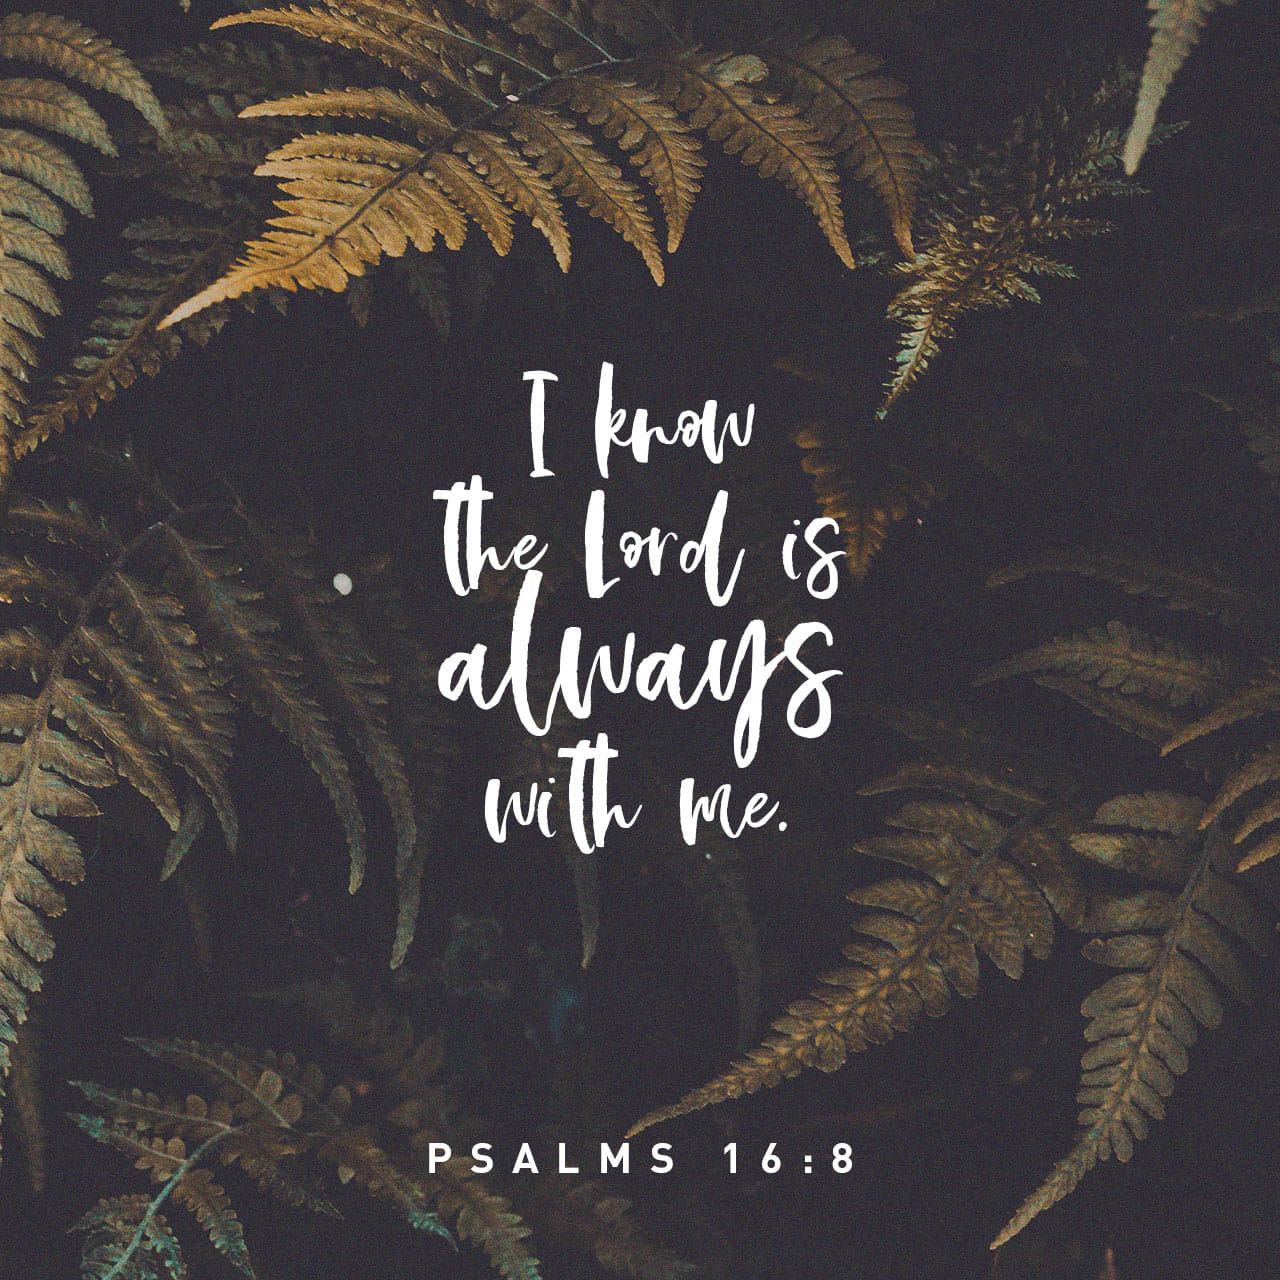 Psalms 16:8 I have set the LORD always before me: because he is at my right hand, I shall not be moved. | King James Version (KJV)